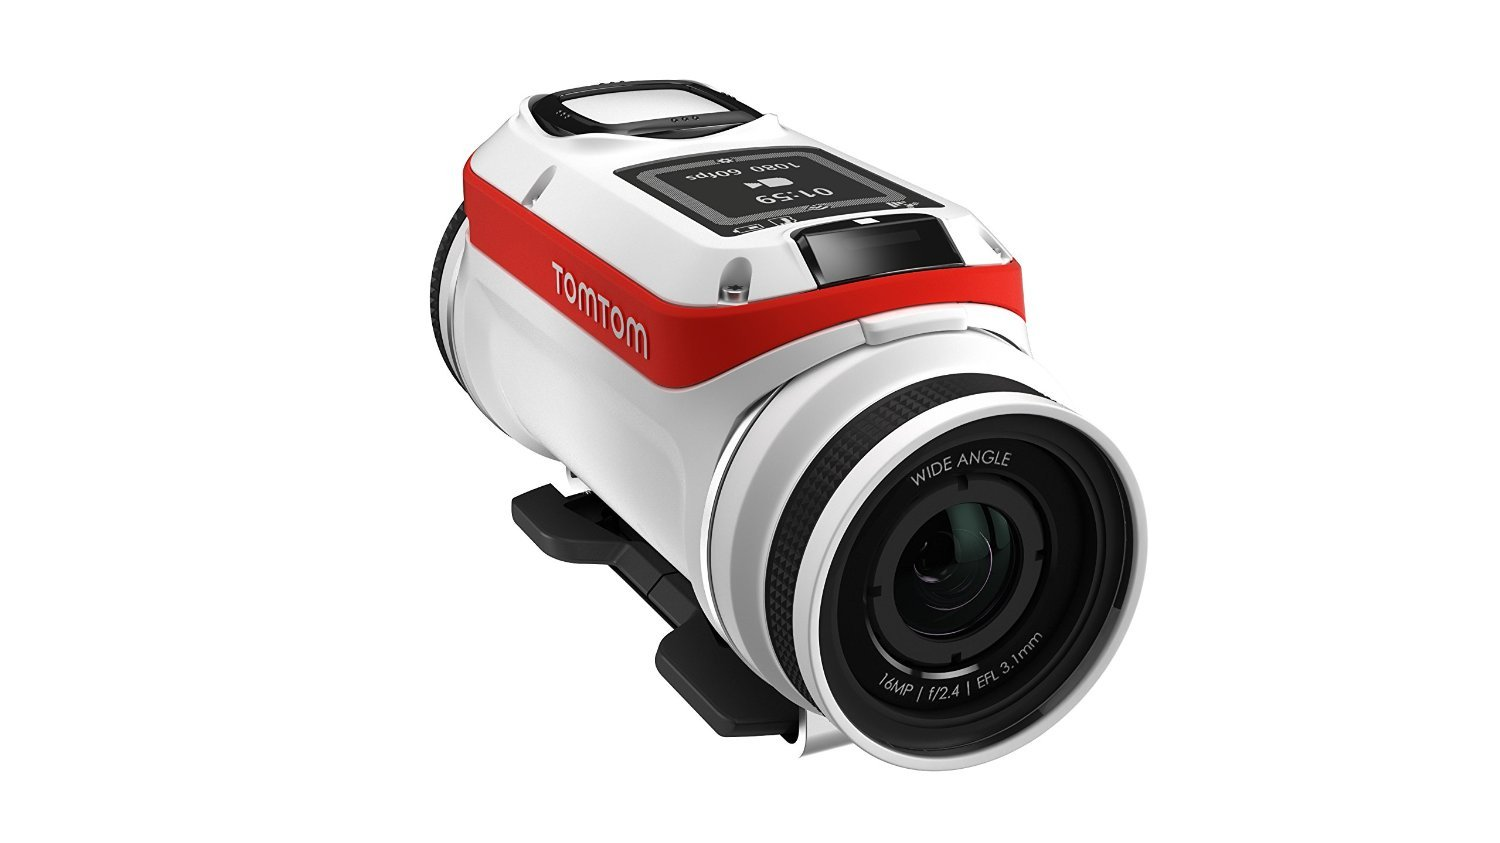 Bandit Action Camera - 61ge7mYedrL - Bandit Action Camera